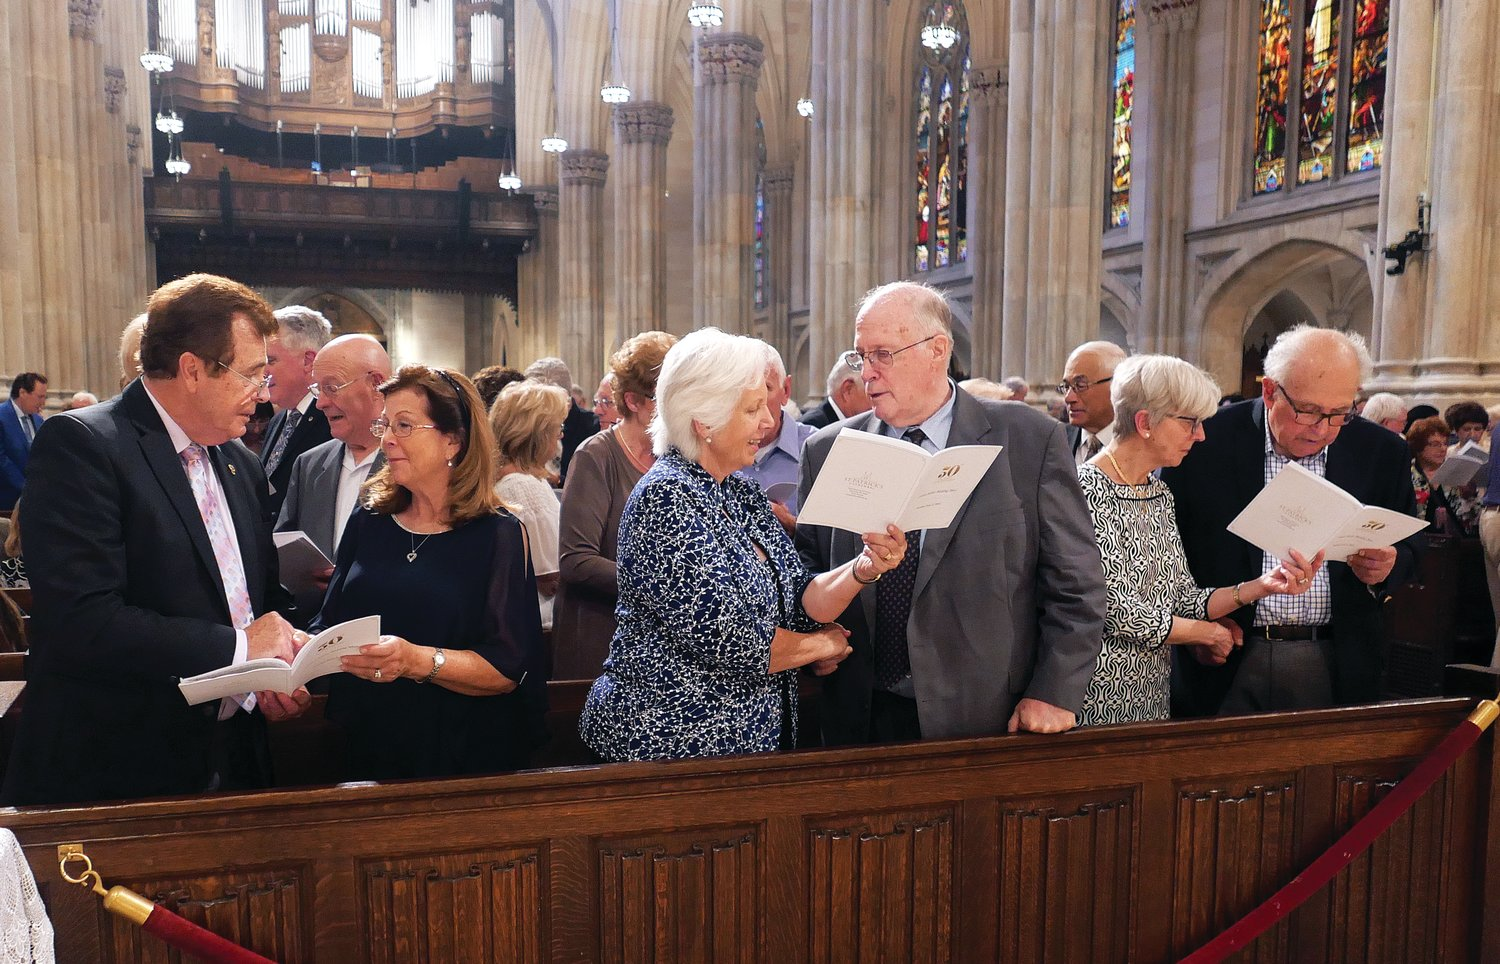 Couples renew their marriage vows at the Golden Jubilee Wedding Mass celebrated by Cardinal Dolan at St. Patrick's Cathedral June 2. Almost 300 couples celebrating 50 years of marriage this year registered to attend the Mass.